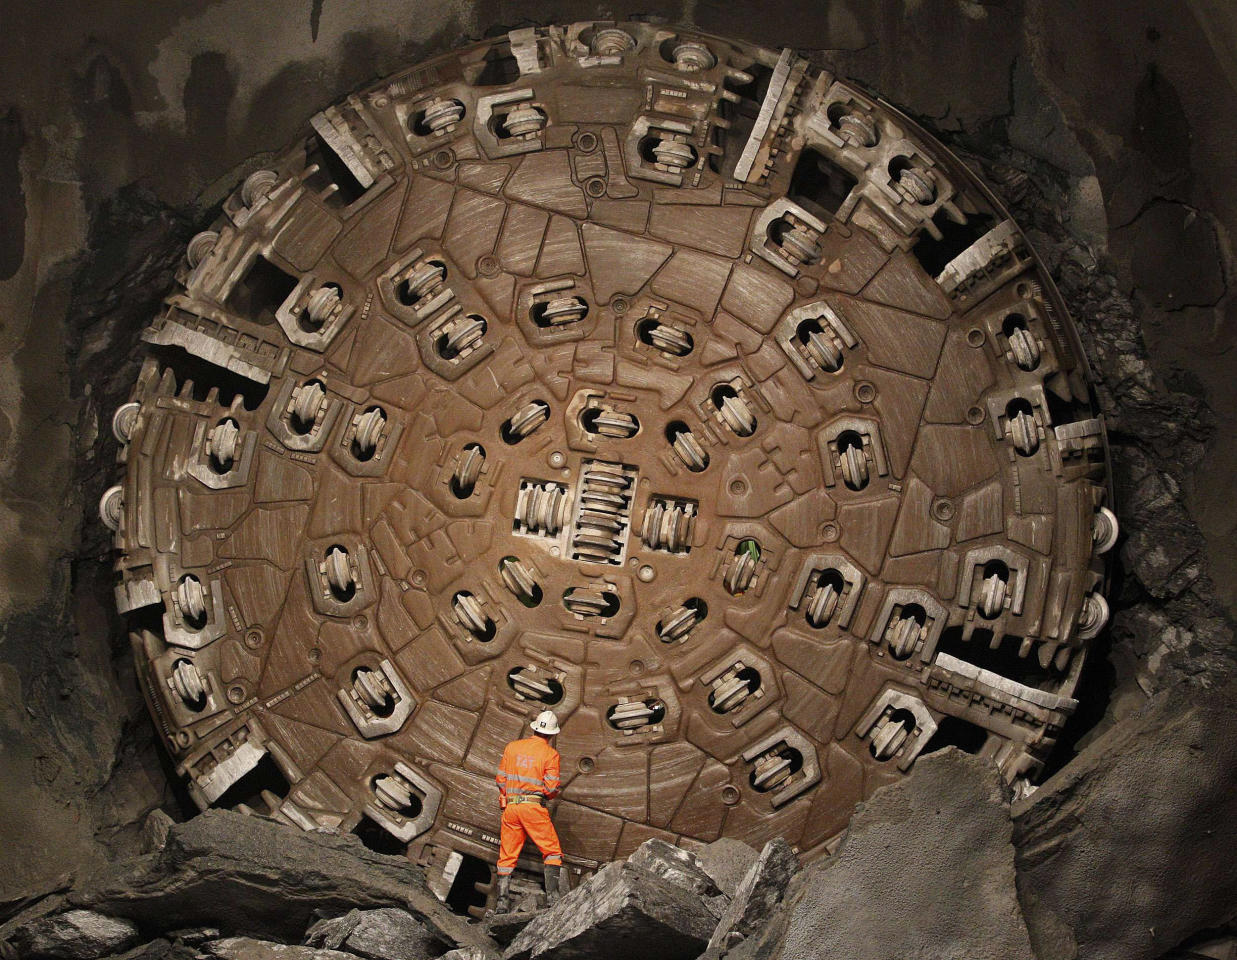 A miner stands in front of the drill machine 'Sissi' after it broke through the rock at the final section Faido-Sedrun, at the construction site of the NEAT Gotthard Base Tunnel Friday Oct. 15, 2010. With a length of 57 km (35 miles) crossing the Alps, the world's longest train tunnel should become operational at the end of 2017.